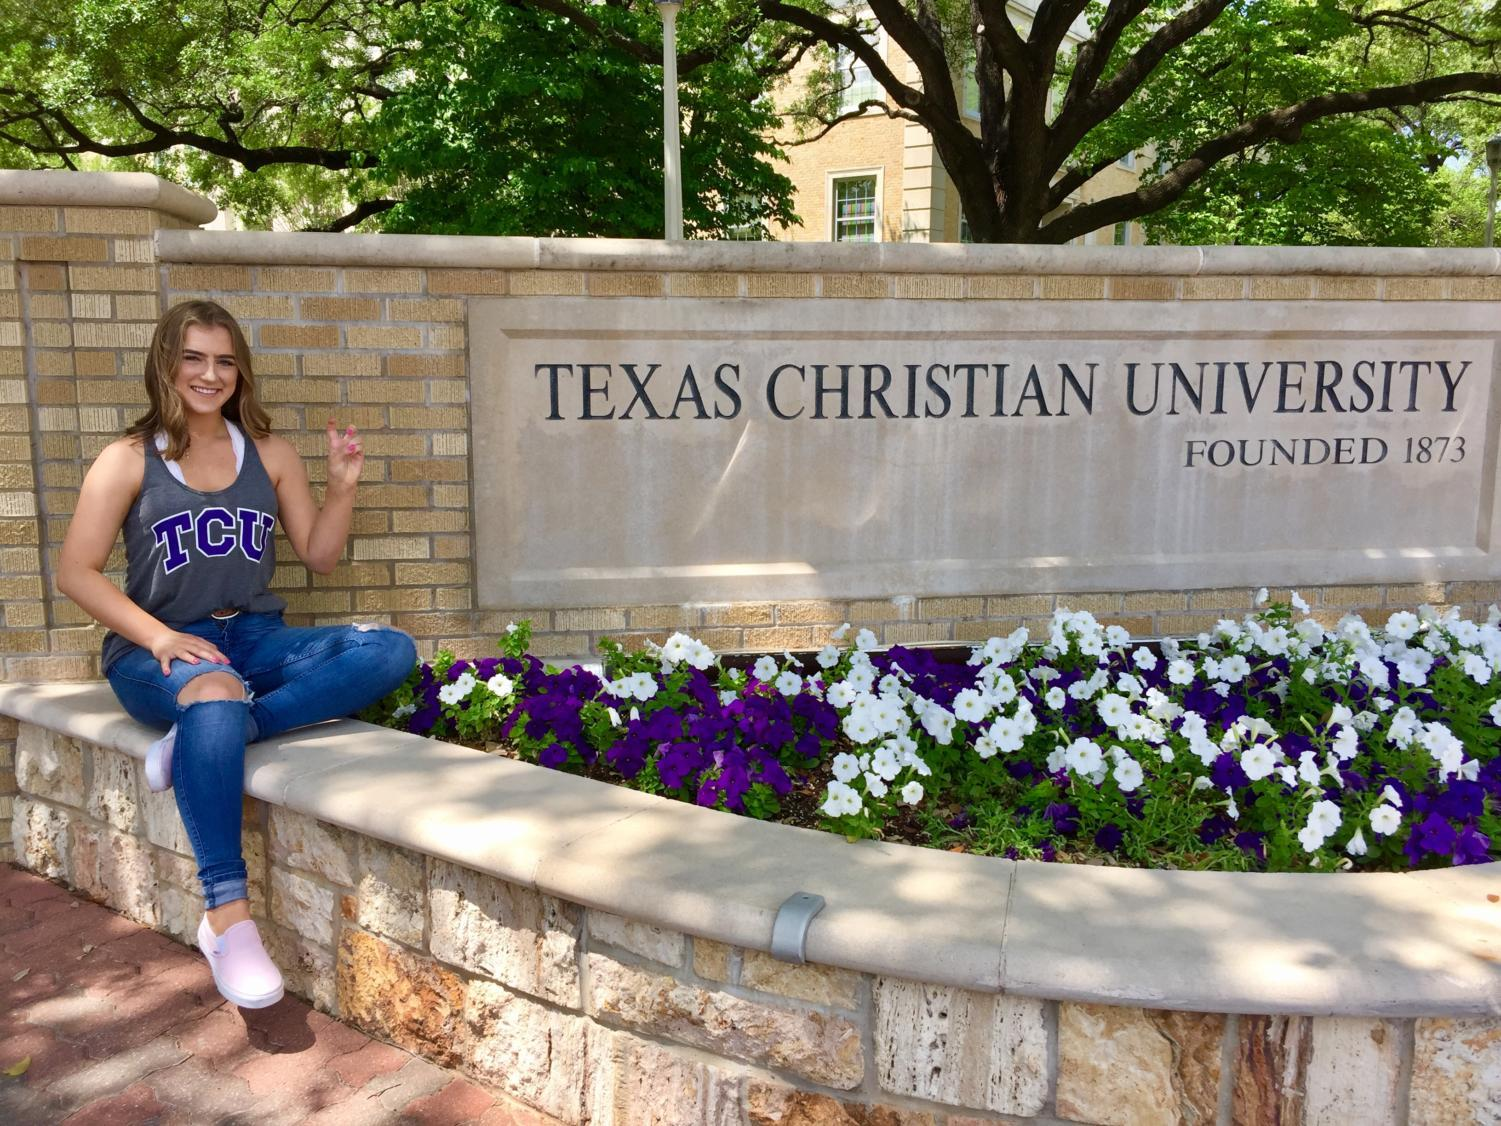 Texas Christian University (TCU) is one of the Texas schools I visited this week. Visiting the school gave me a much better outlook on the aspects of the school I like.